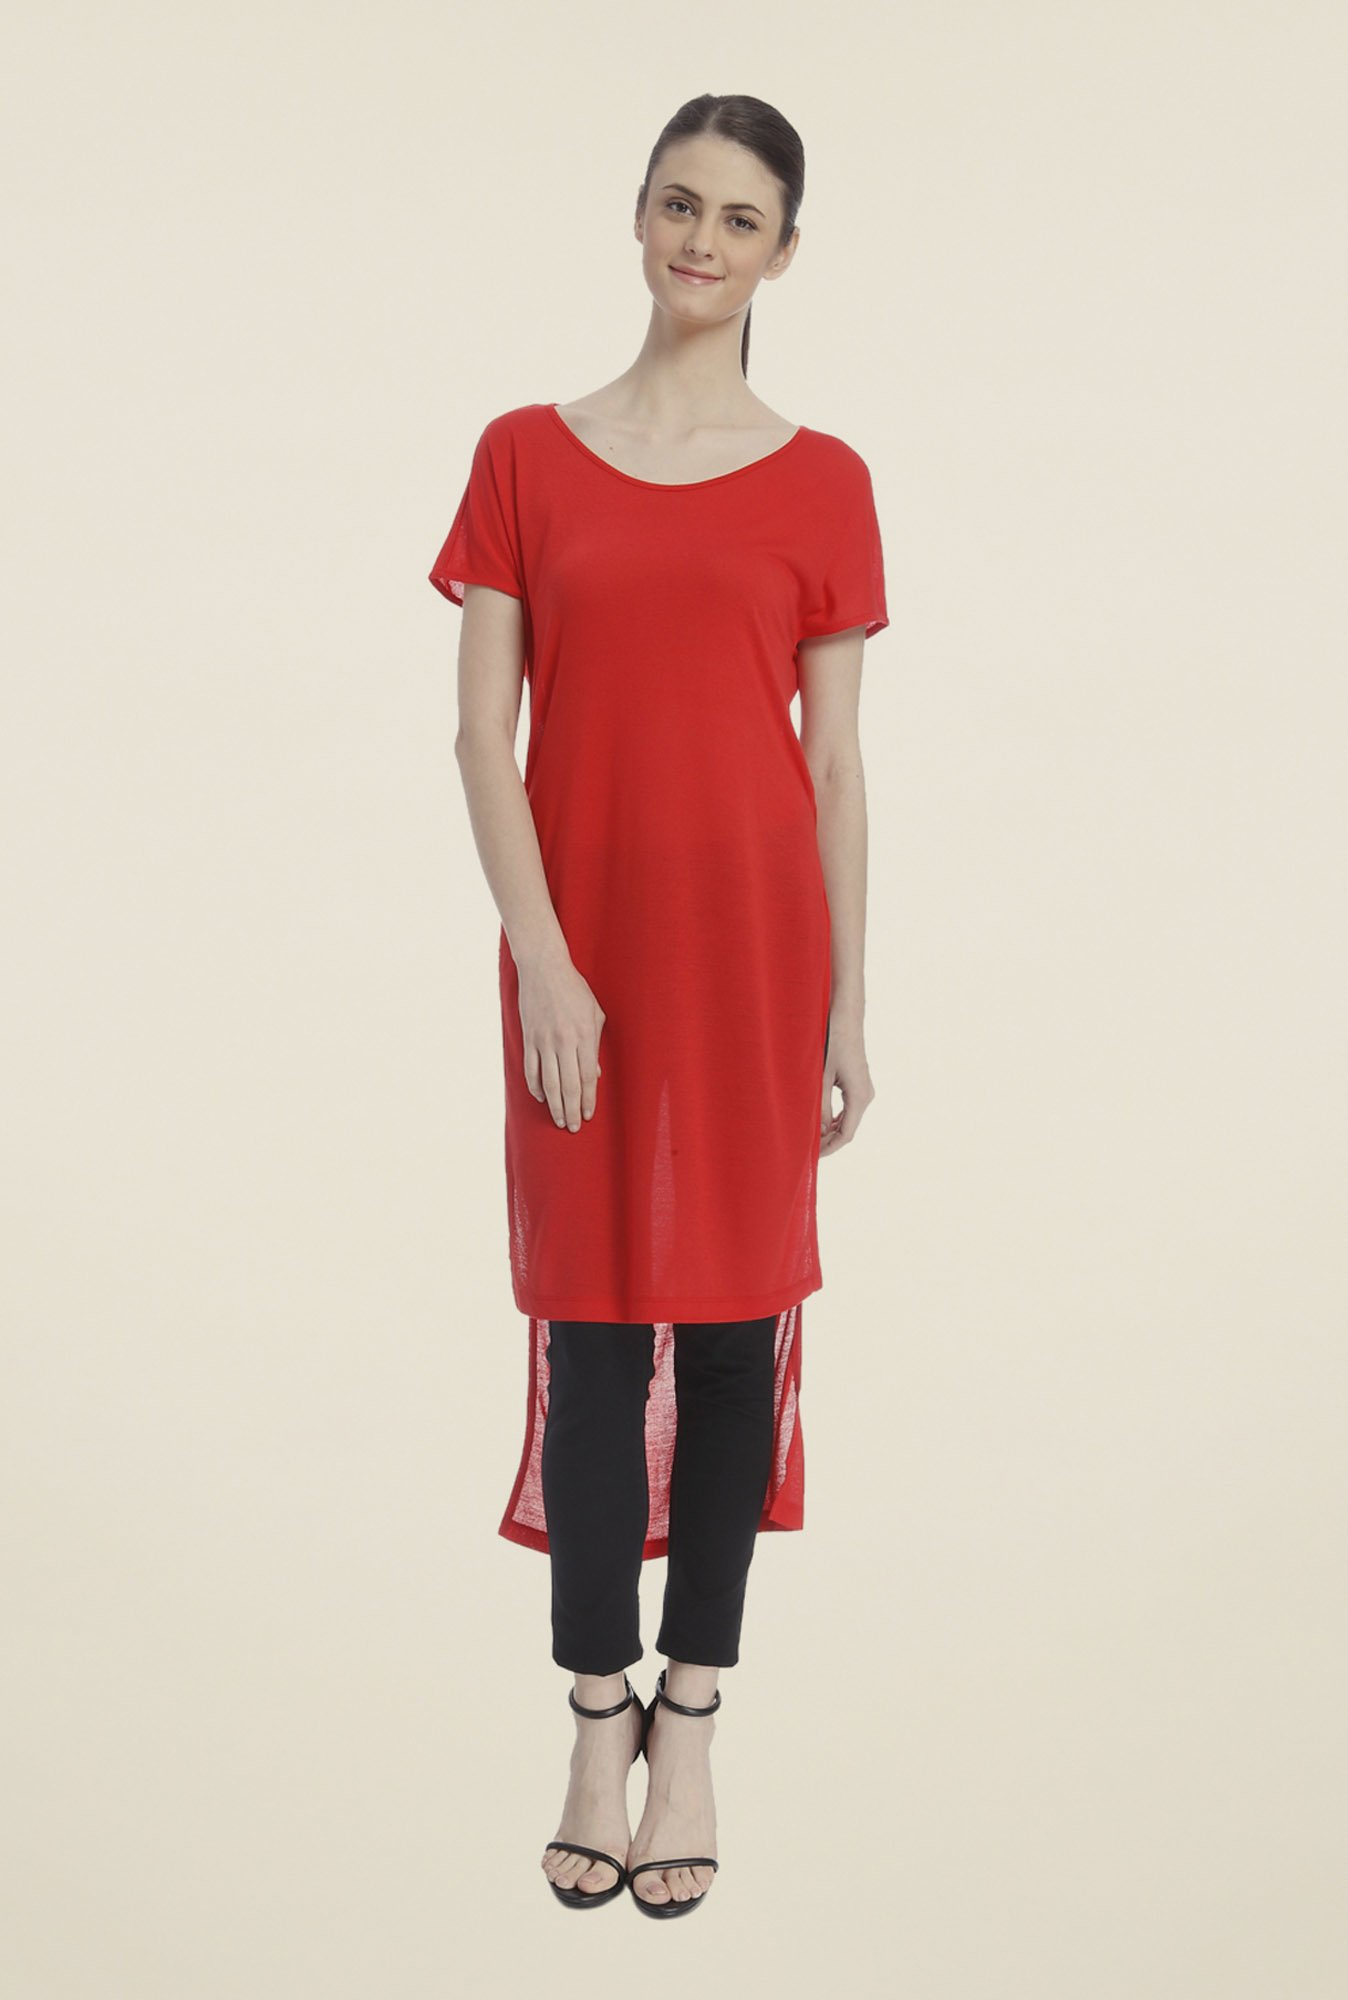 Vero Moda Red Solid Top